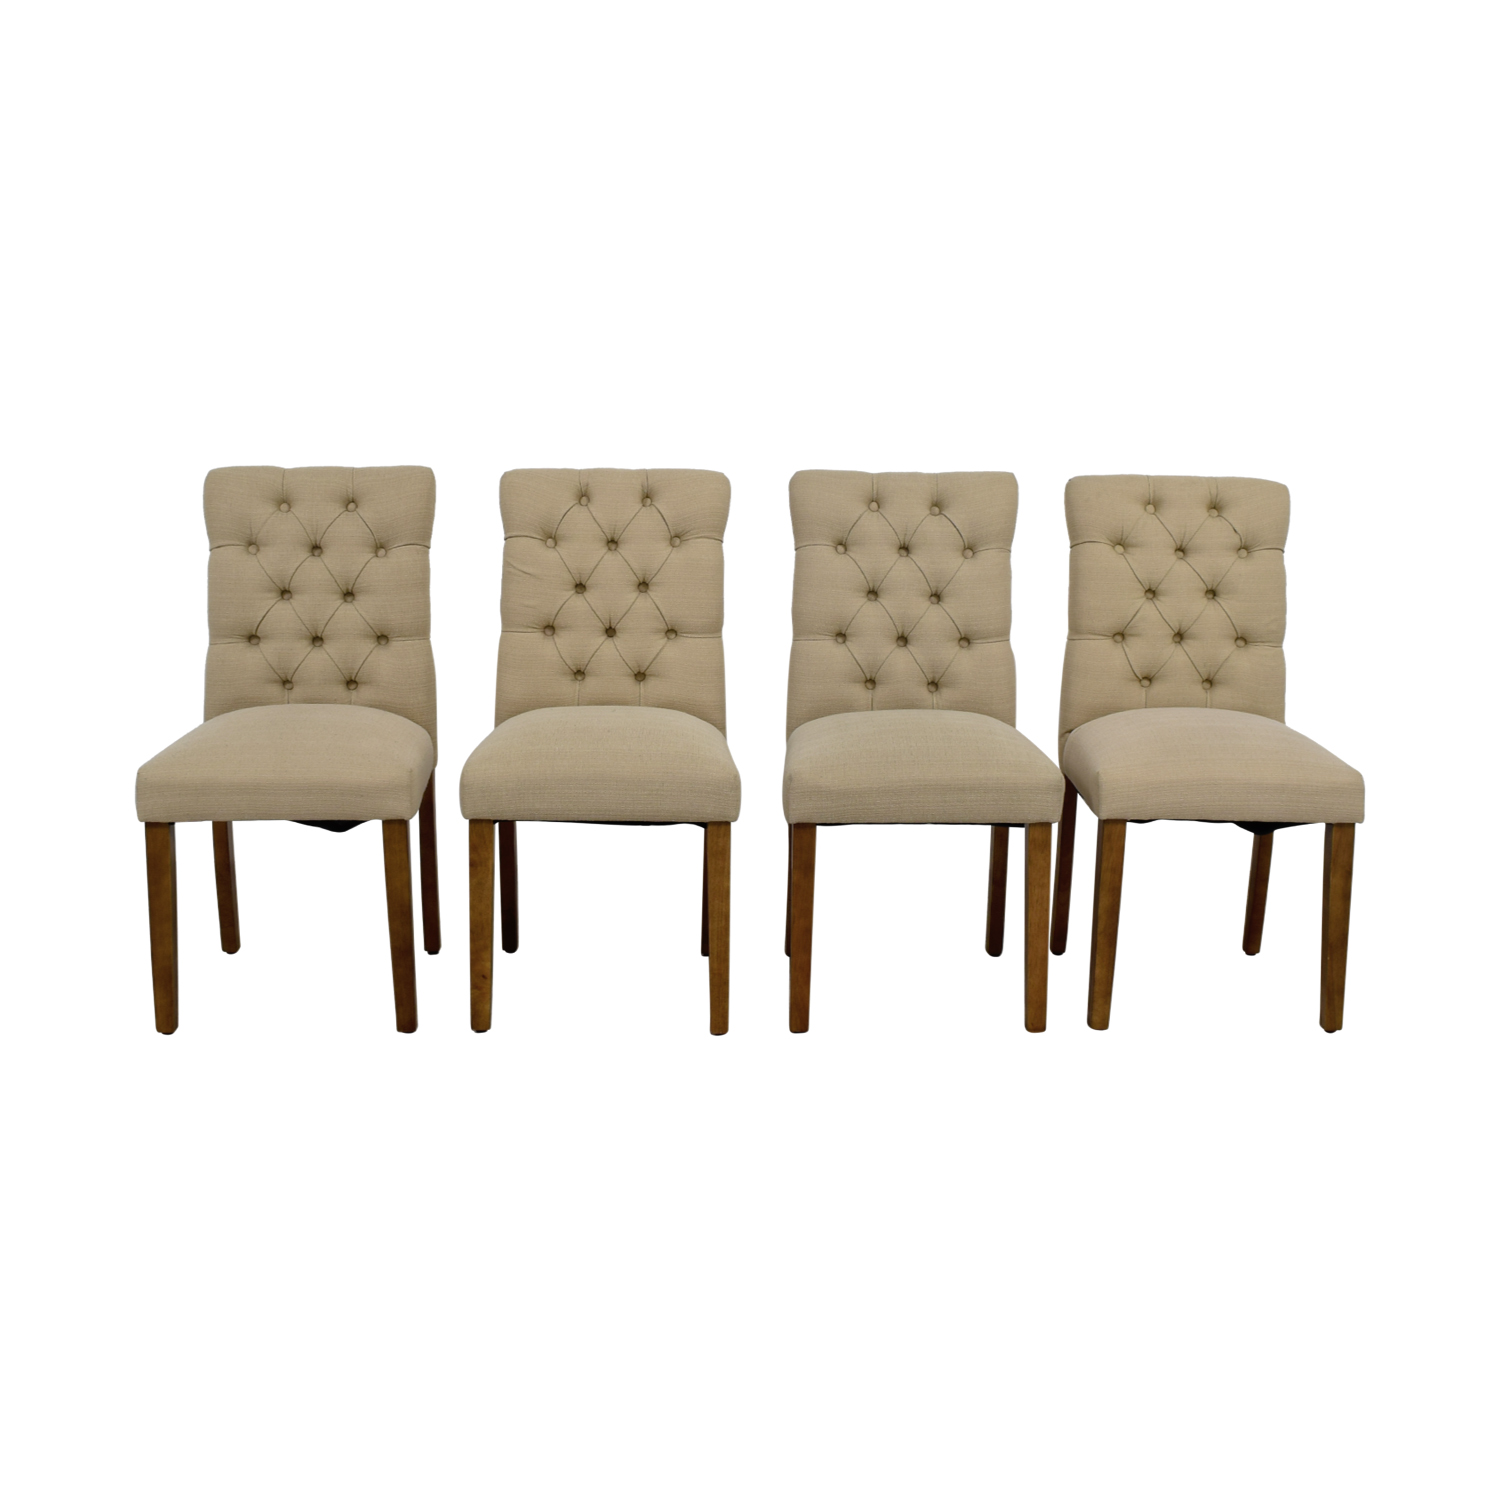 shop Target Target Brookline Threshold Tan Tufted Dining Chairs online